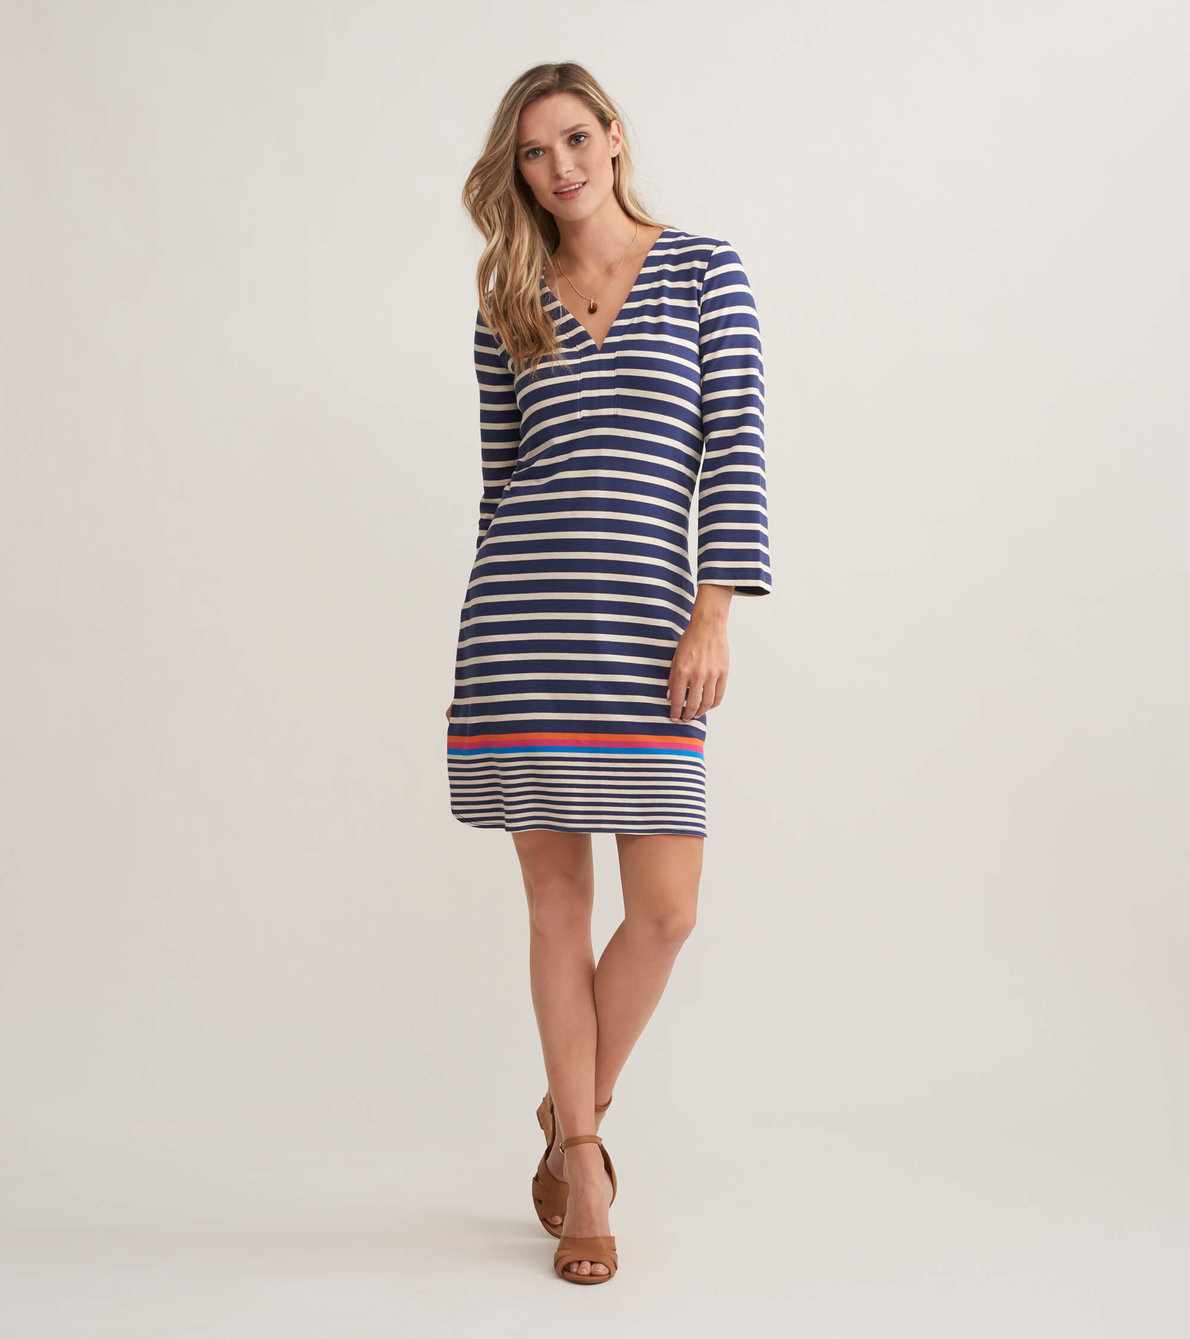 View larger image of Ashley Dress - Navy Stripes